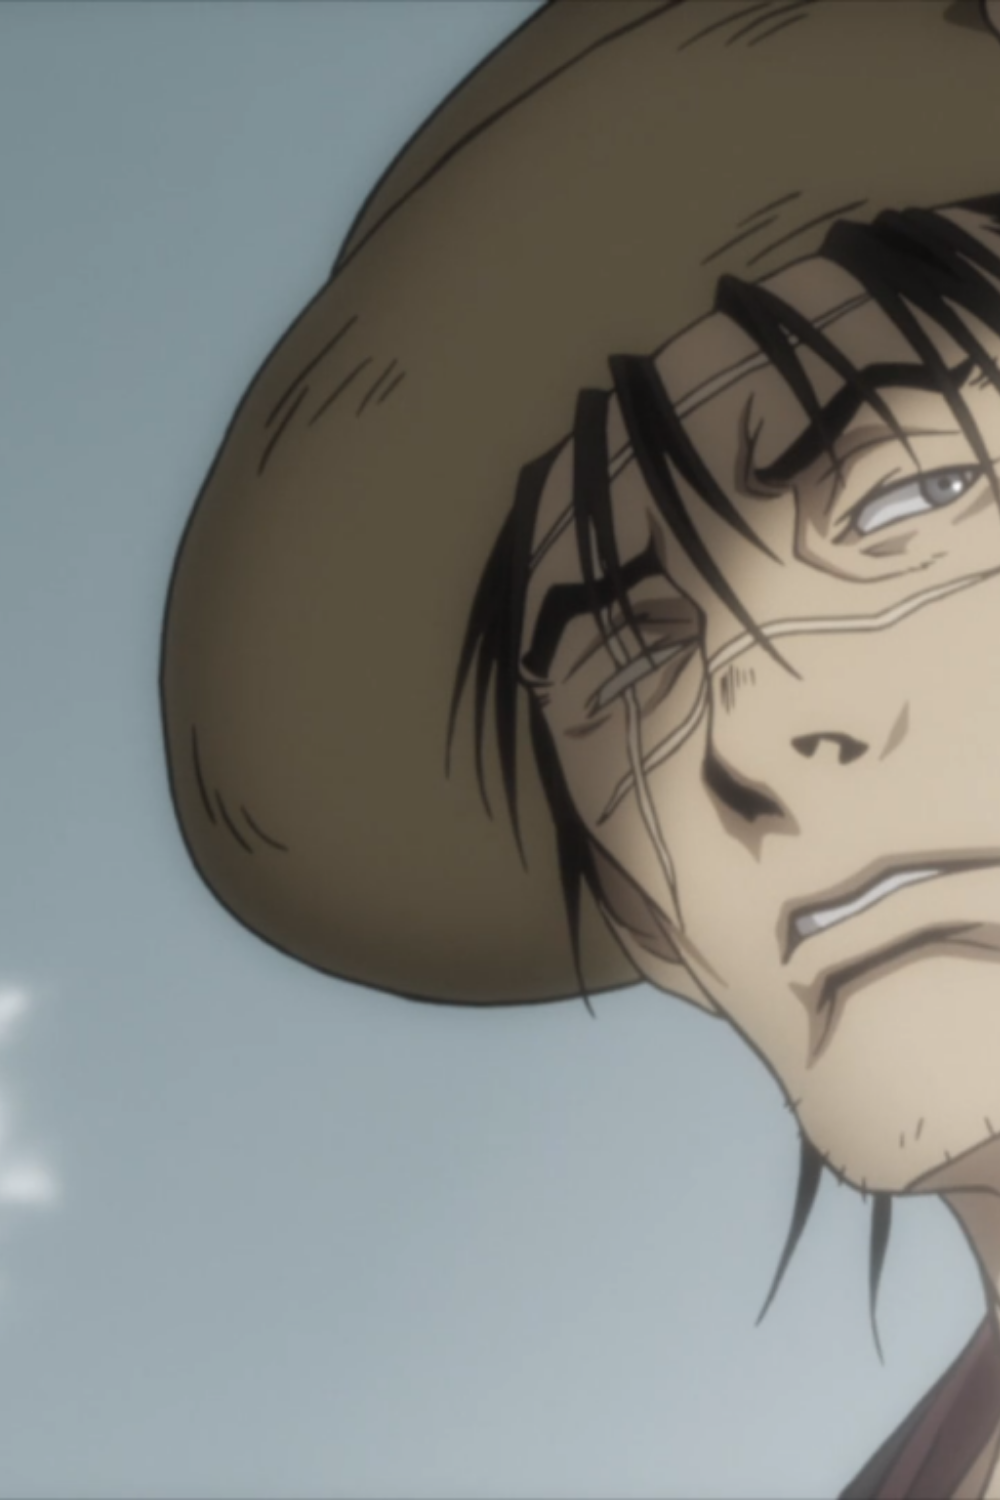 Manji In Hat Icon In 2021 Blade Of The Immortal Japanese Folklore Episode